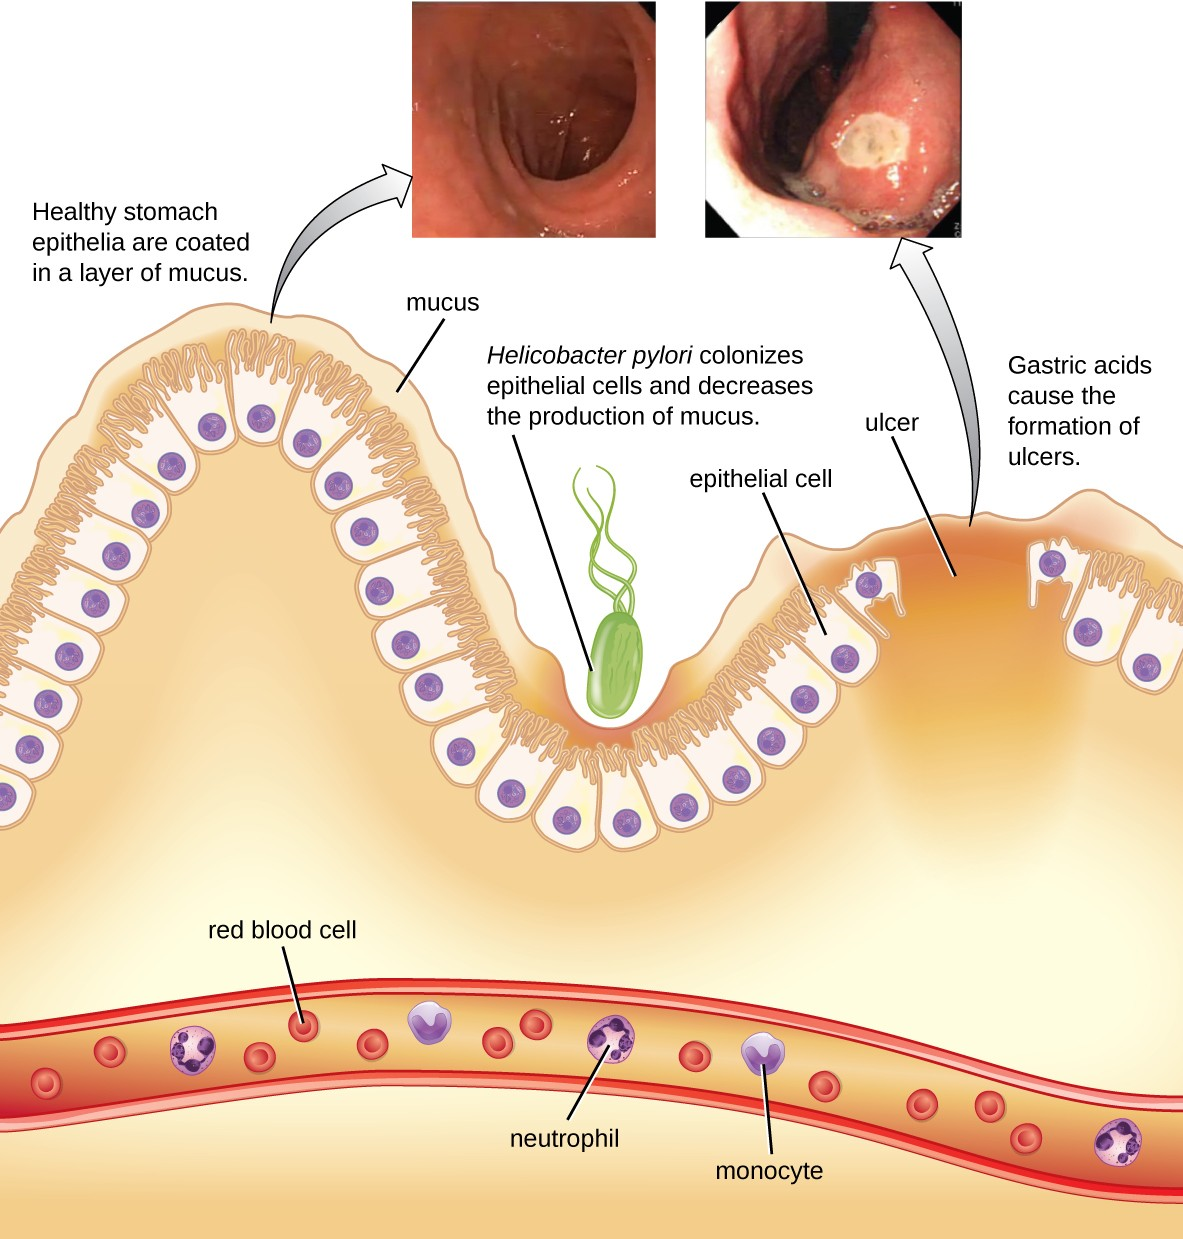 Helicobacter infection decreases mucus production and causes peptic ulcers.